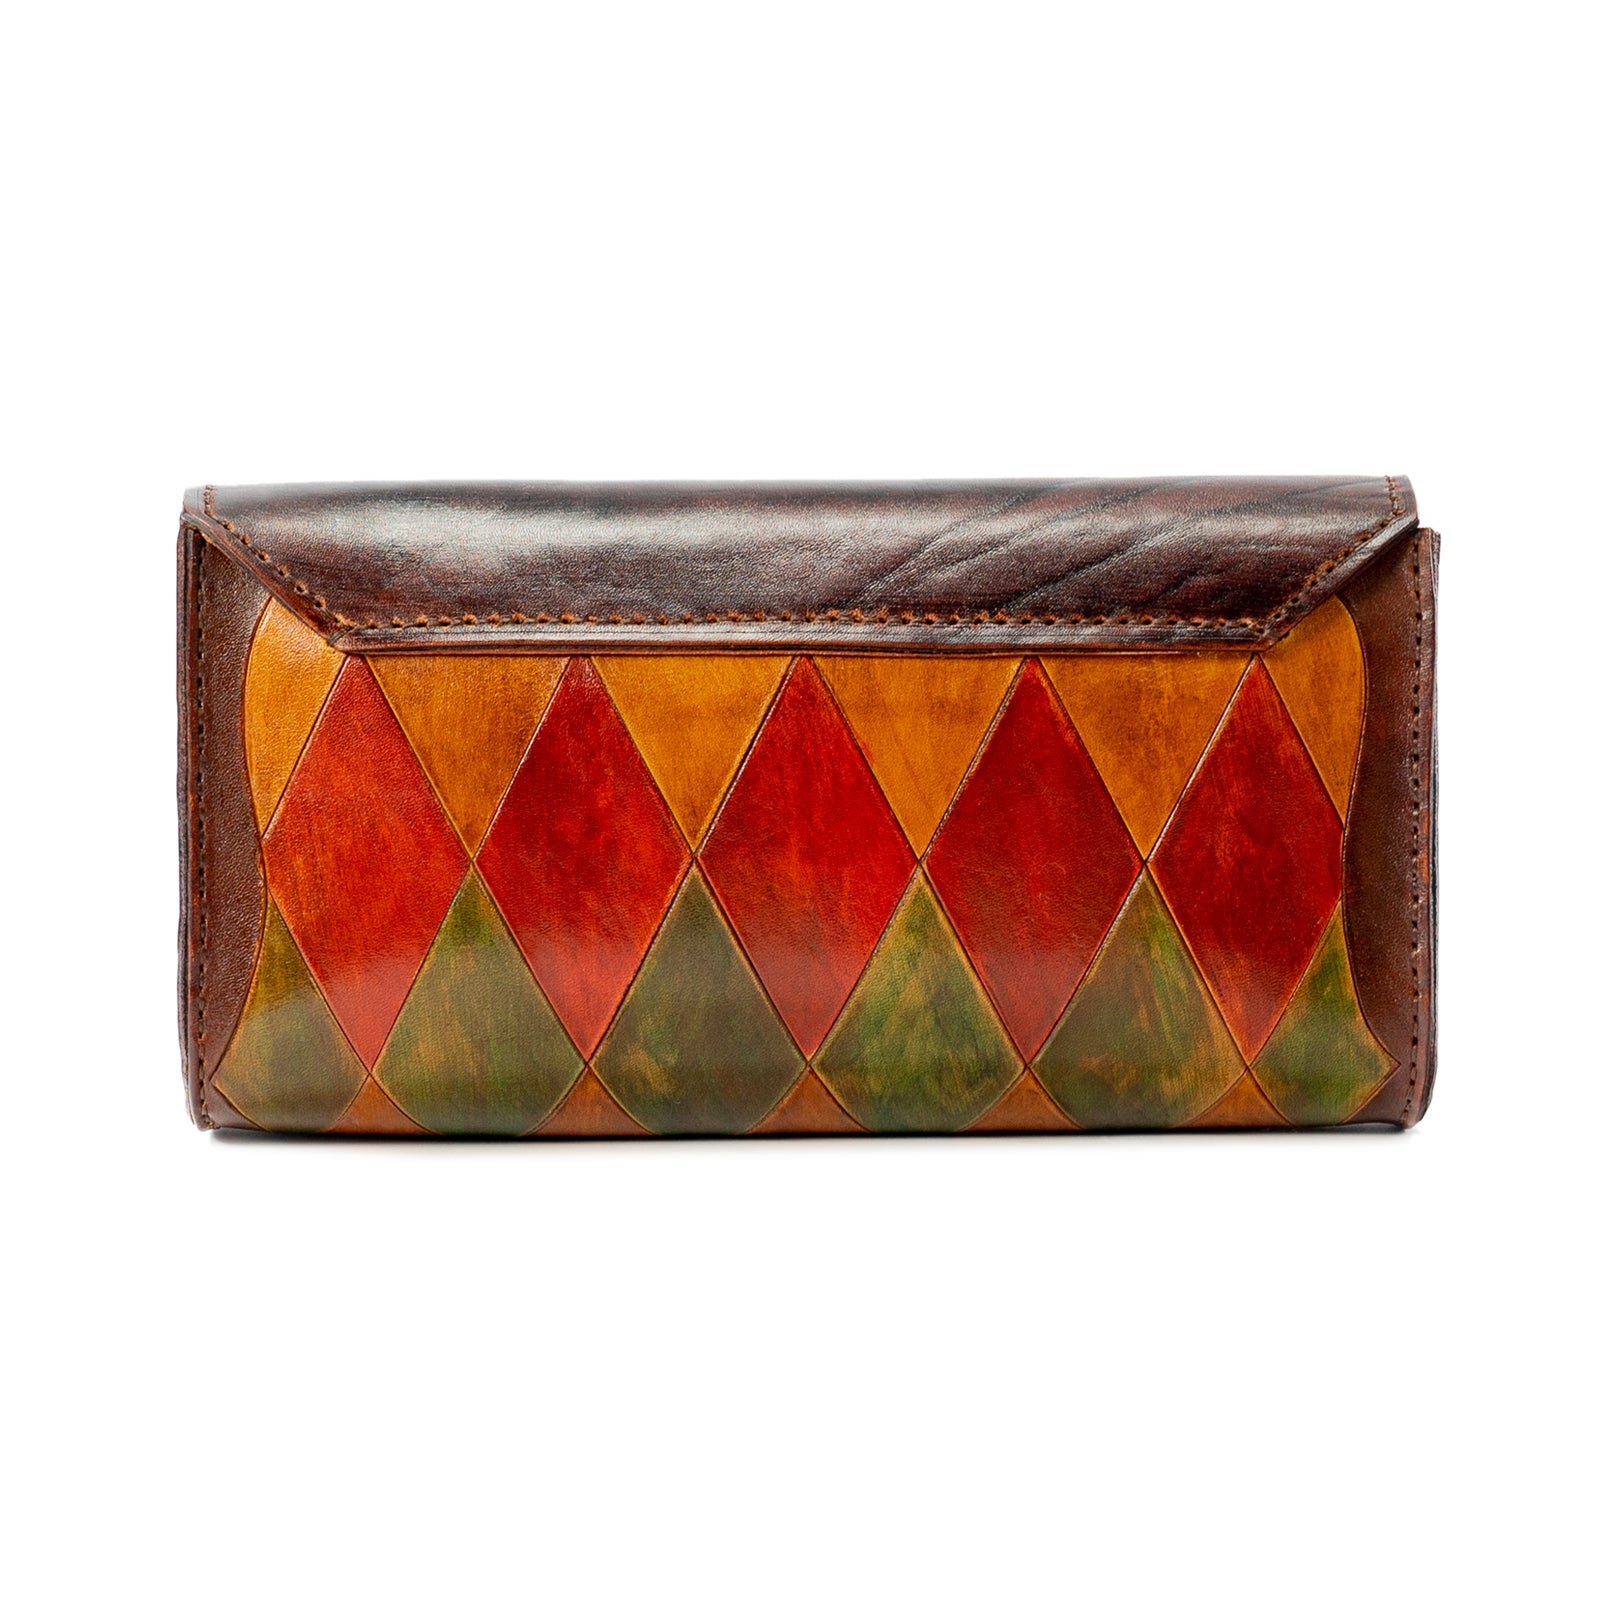 Derifix Hekla Women's Handmade Leather Bag